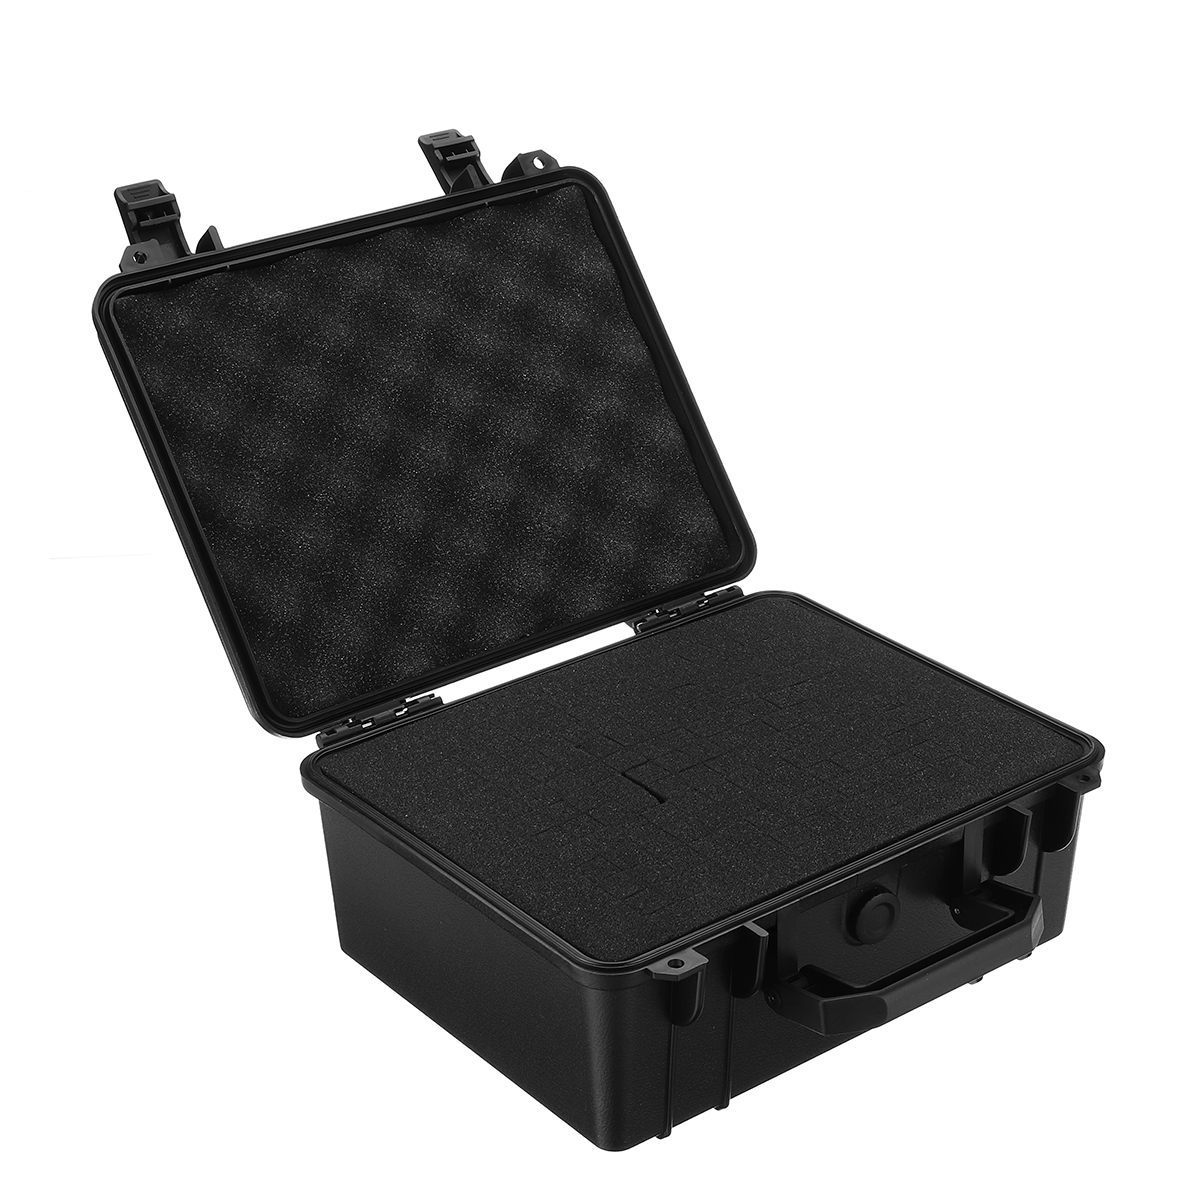 Portable Waterproof Hard Carry Tool Case Bag Storage Box Tactical Safety Protector Organizer Hardware toolbox Impact Resistant